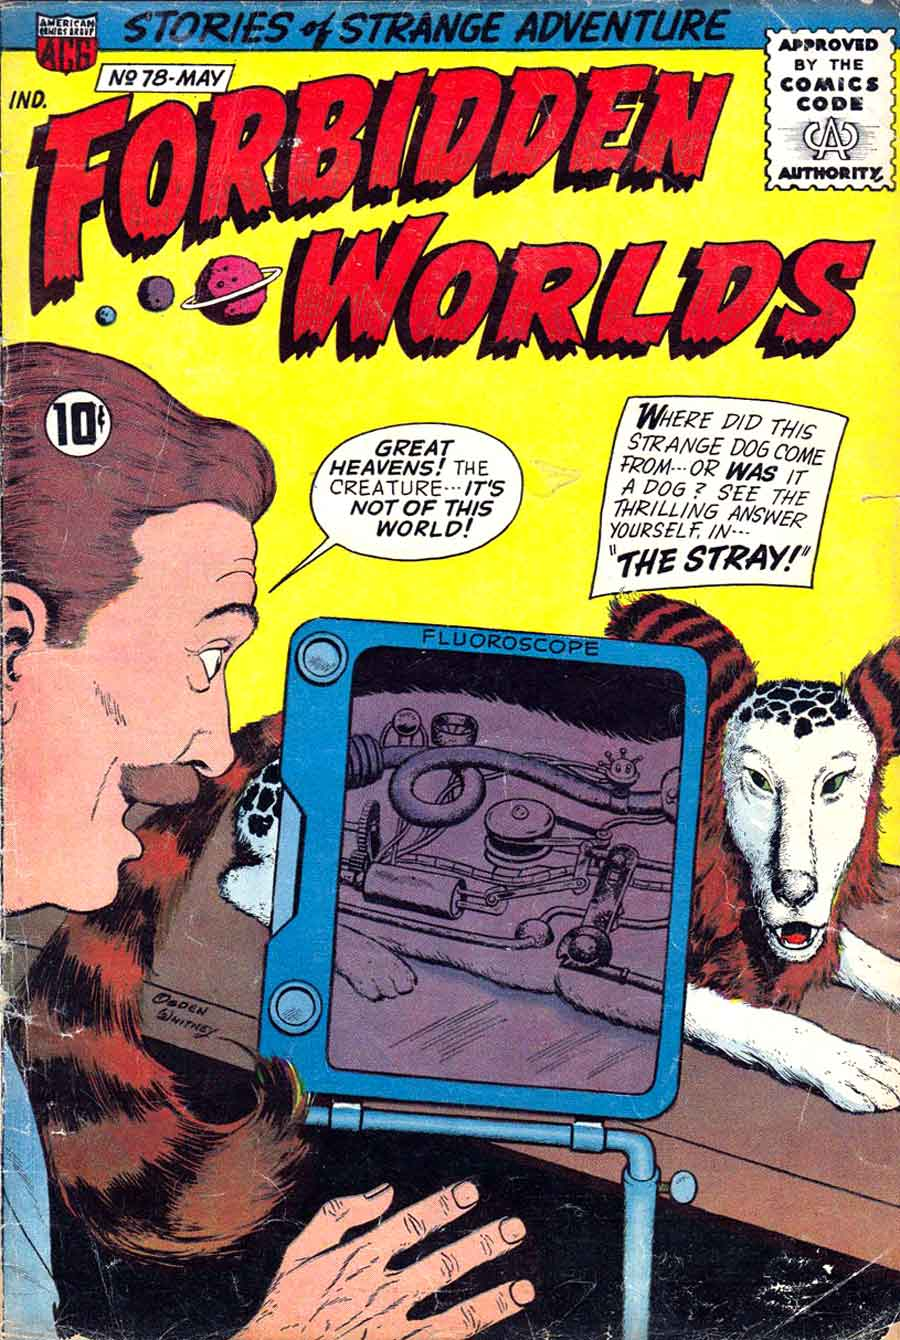 Forbidden Worlds #78 golden age 1950s science fiction comic book cover